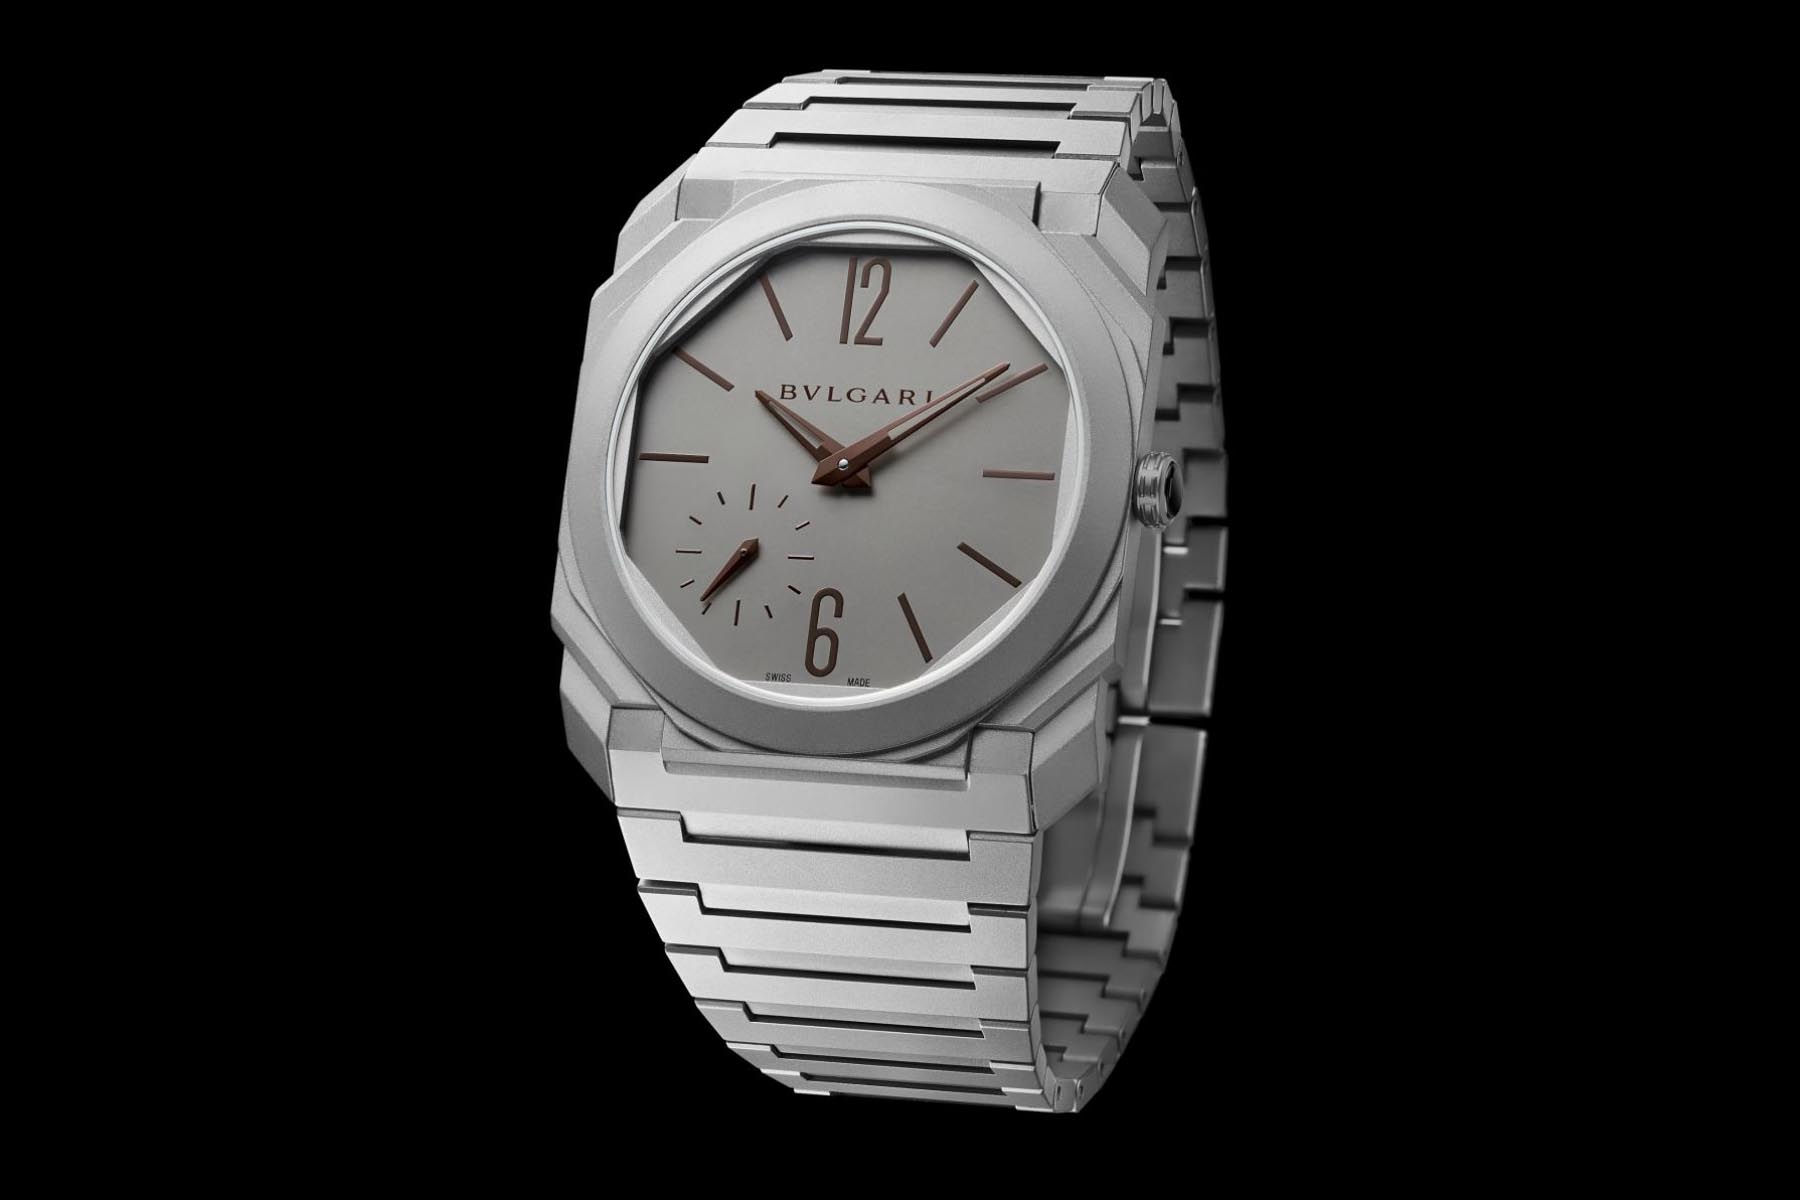 Fine Watch Club - Bulgari Octo Finissimo Limited Edition